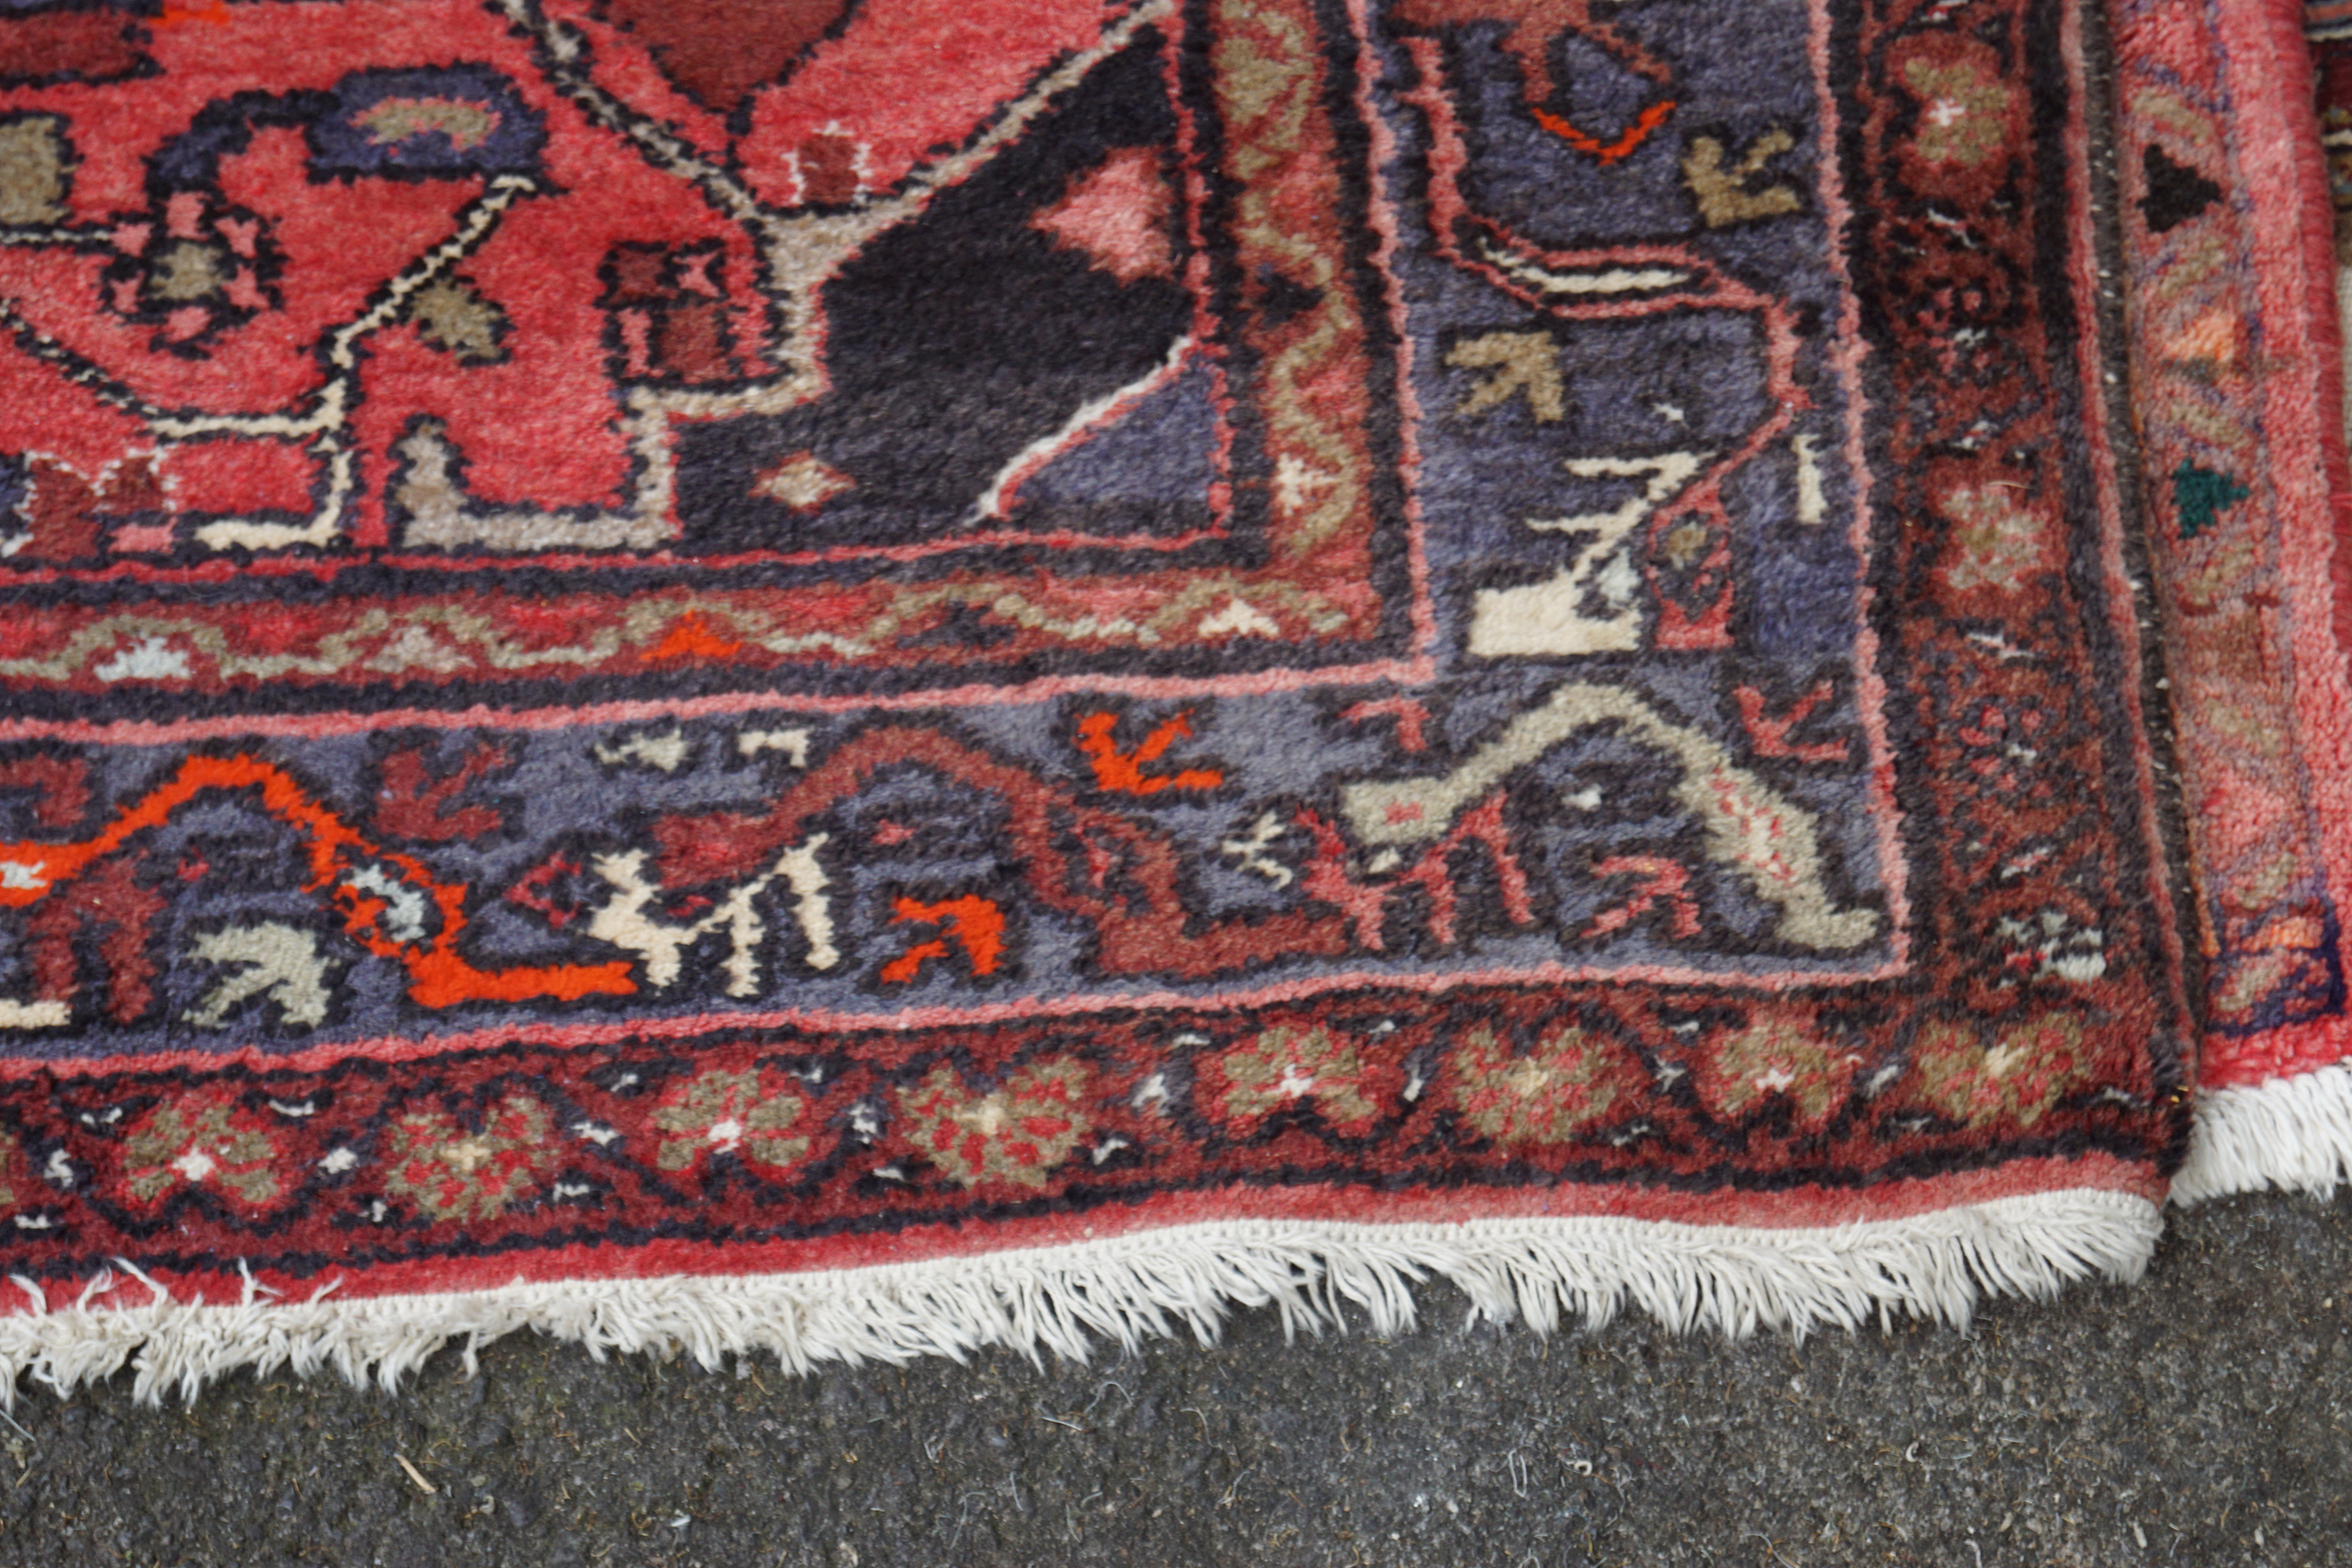 LARGE PERSIAN RUG - Image 3 of 5